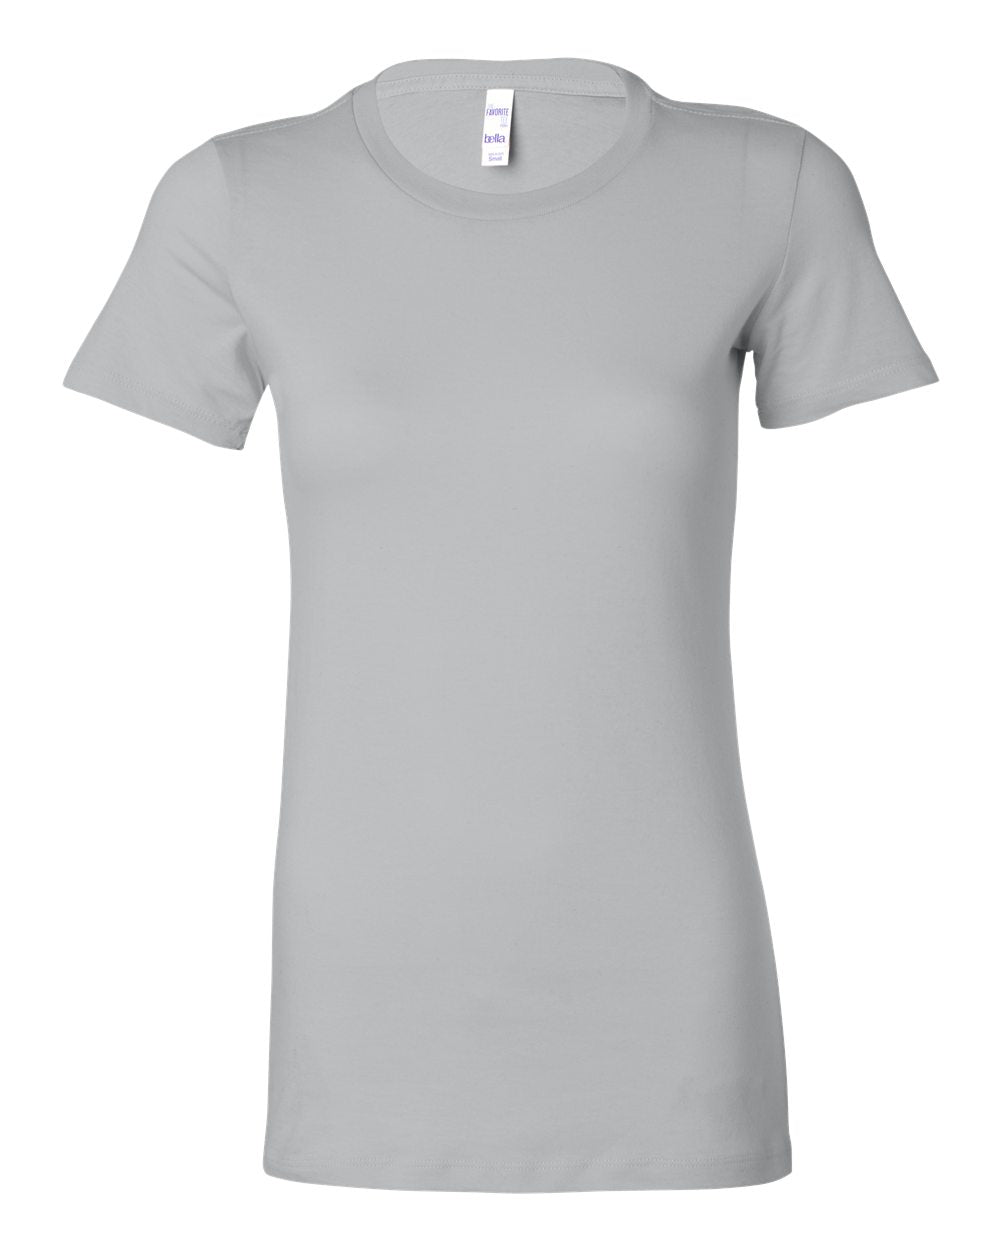 Bella + Canvas - Women's The Favorite Tee - Full Color - 6004